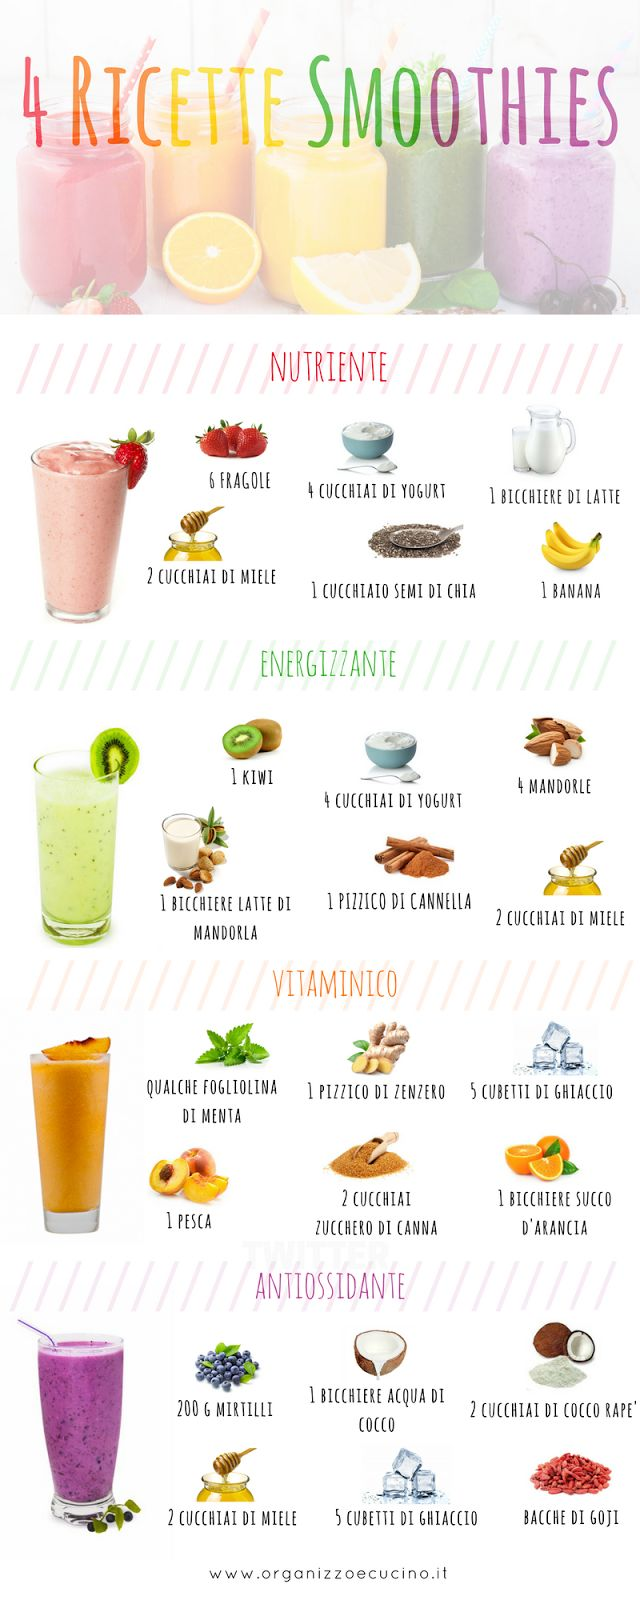 4 Ricette Smoothies